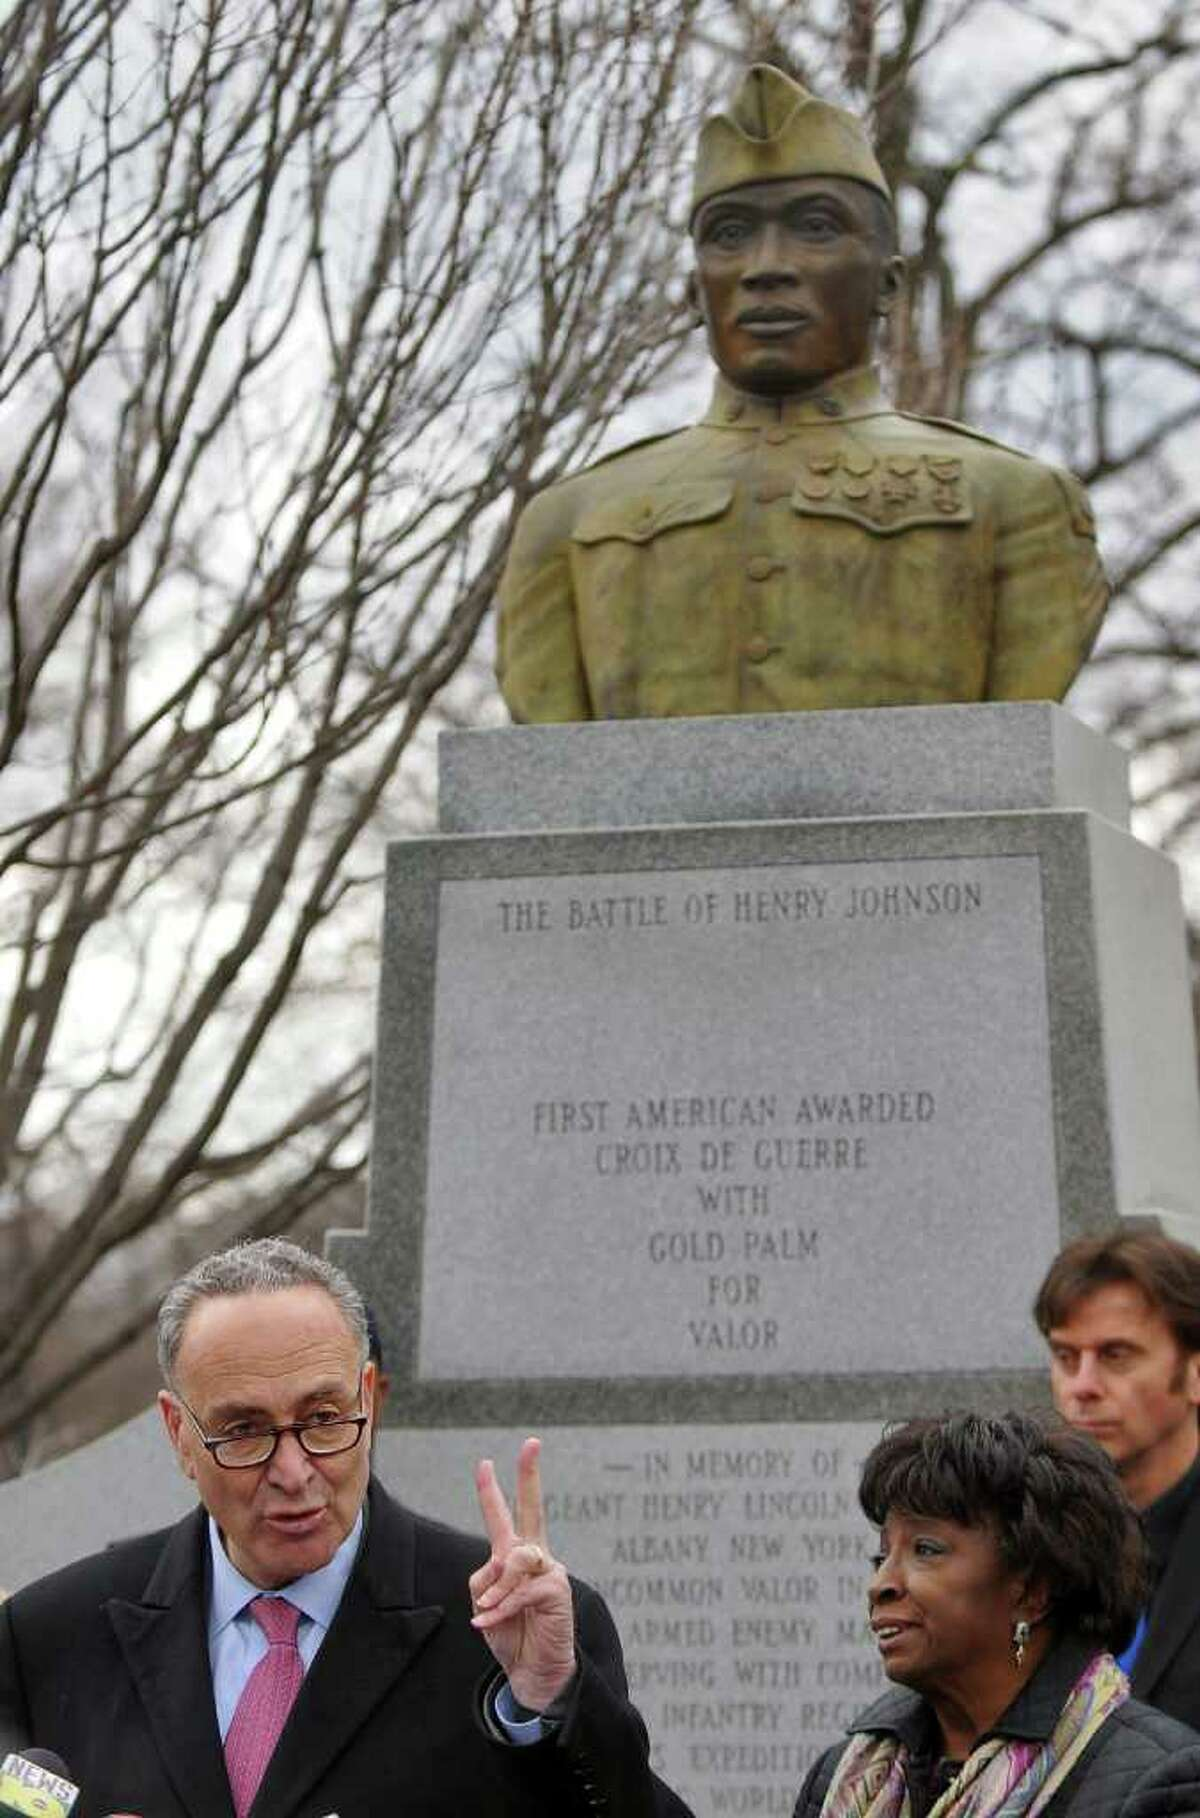 U.S. Senator Charles E. Schumer announces that newly discovered documents will enhance Sgt. Henry Johnson's chance of receiving the Medal of Honor, at the World War I hero's statue in Washington Park on Tuesday, March 22, 2011 in Albany, NY. Albany County Legislators Lucille McKnight and Brian Scavo are at right. ( Philip Kamrass/ Times Union )